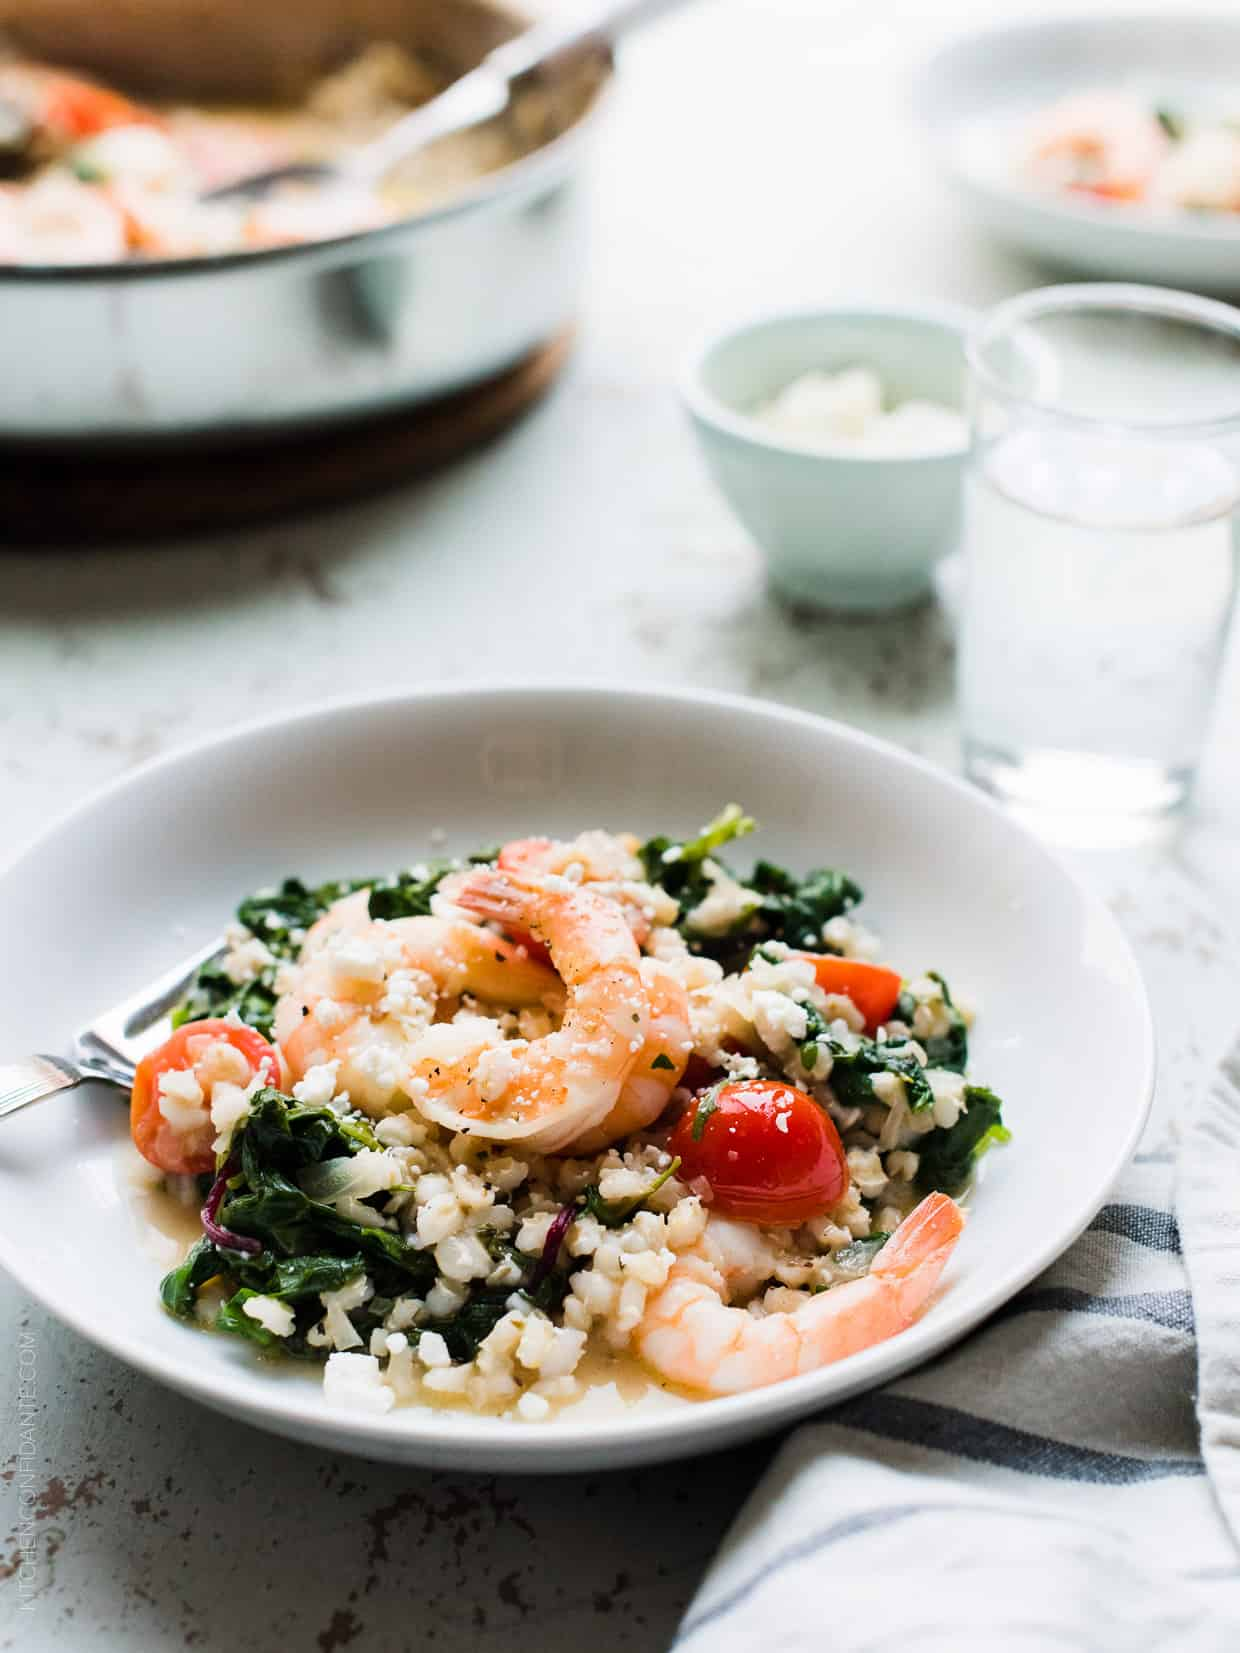 Simple, light, fresh, and made in one skillet. This delicious recipe for Greek Shrimp, Pearl Barley and Kale with Feta doesn't get any easier!